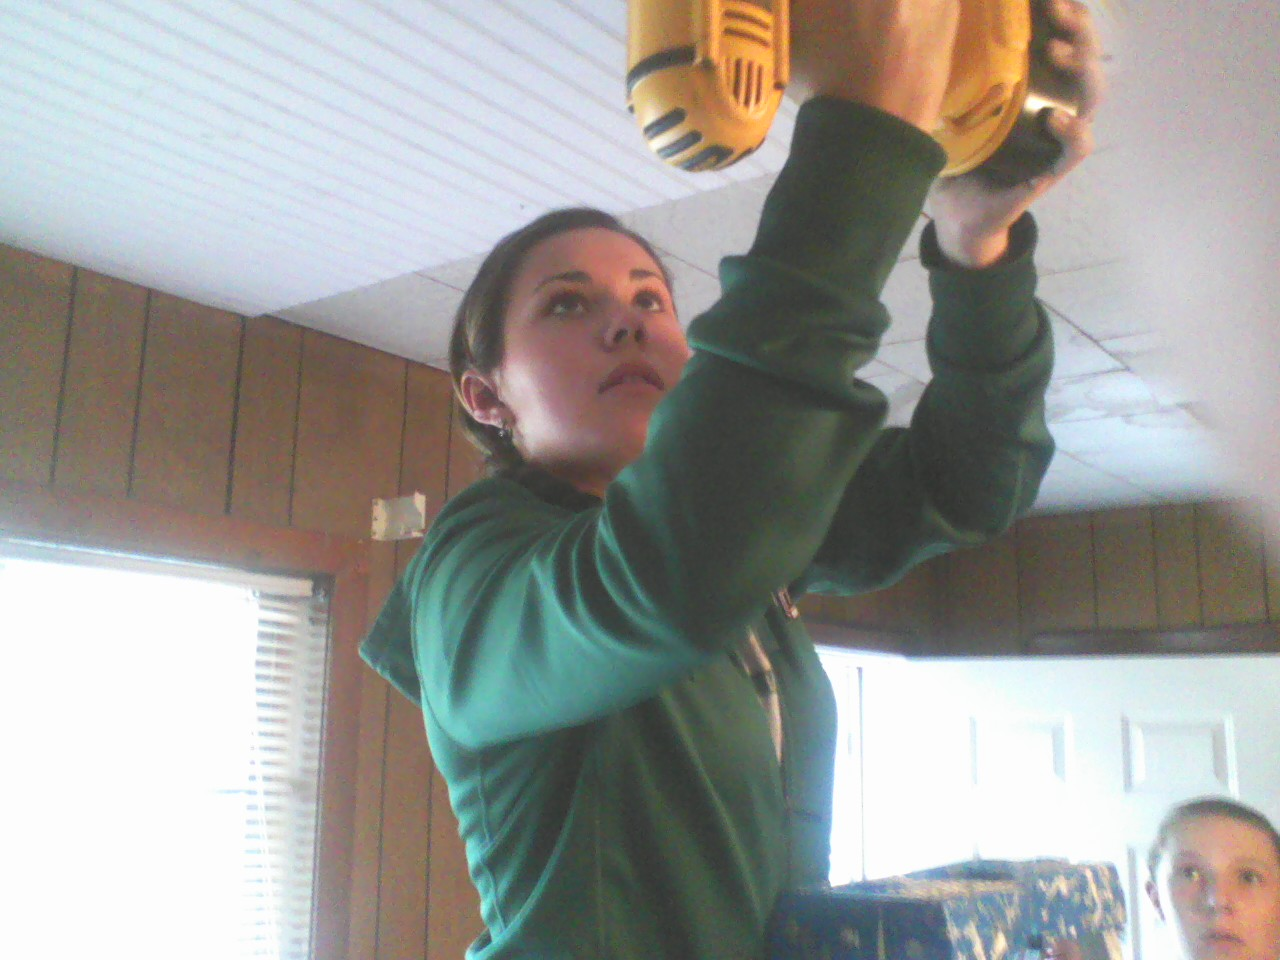 Madison was relentless with the screw gun.